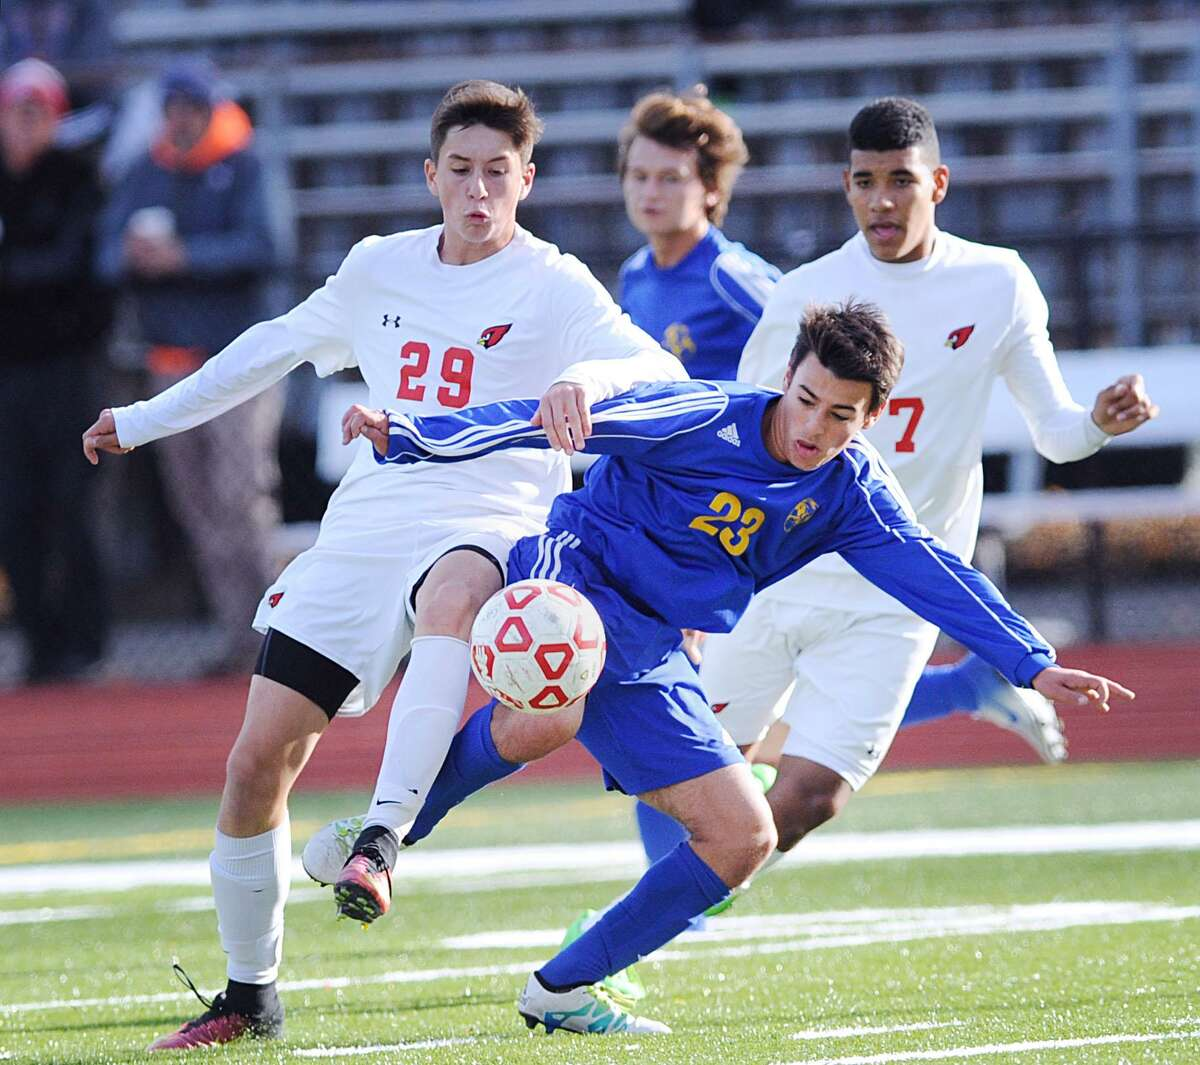 At left, Kai Lammers (29) of Greenwich goes for the ball along with Newtown's Adam Farley (23) during the boys high school Class LL soccer playoff game between Greenwich High School and Newtown High School at Cardinal Stadium in Greenwich, Conn., Thursday, Nov. 10, 2016. In background at right is Sebastian Hernandez (7) of Greenwich. Greenwich advanced in the tournament, defeating Newtown 2-1.